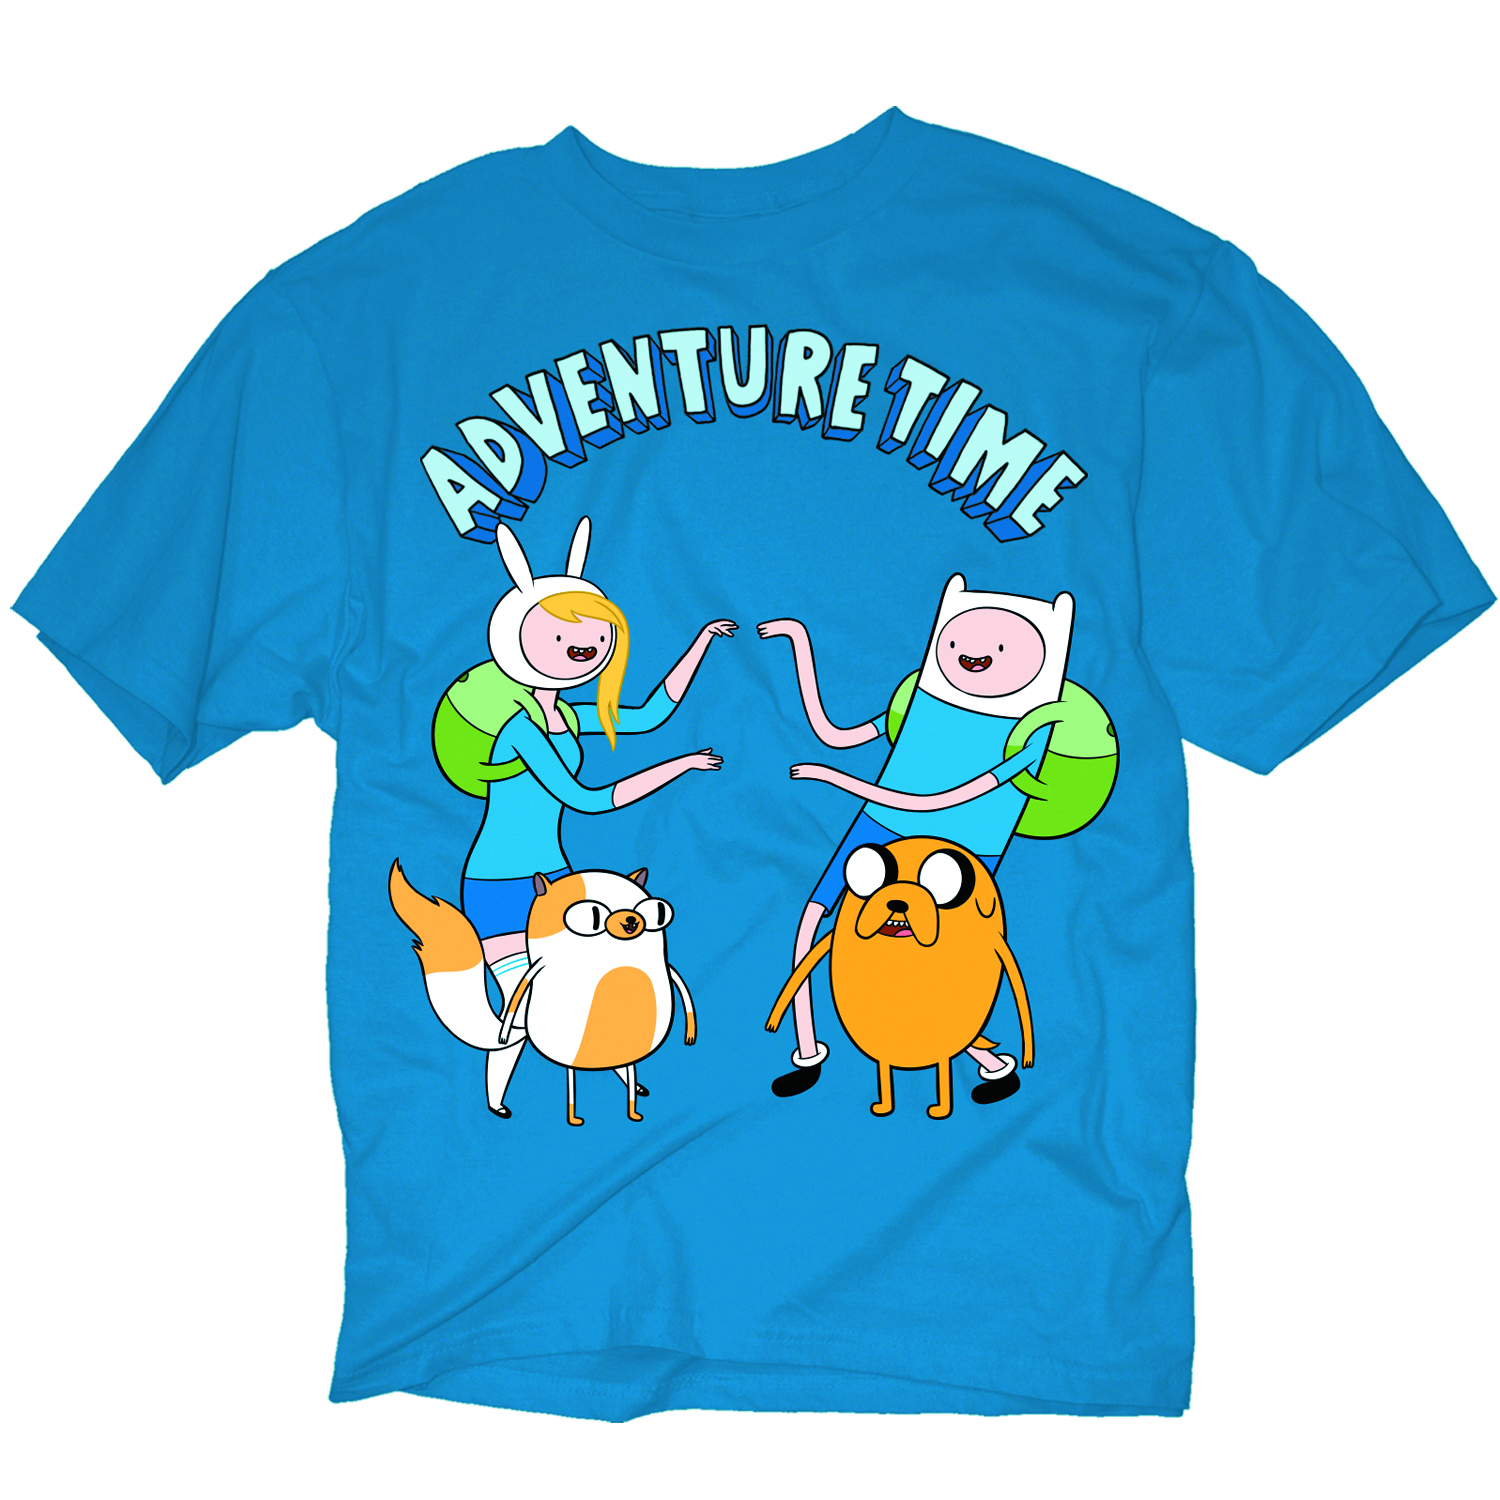 ADVENTURE TWINS PX BLUE T/S MED